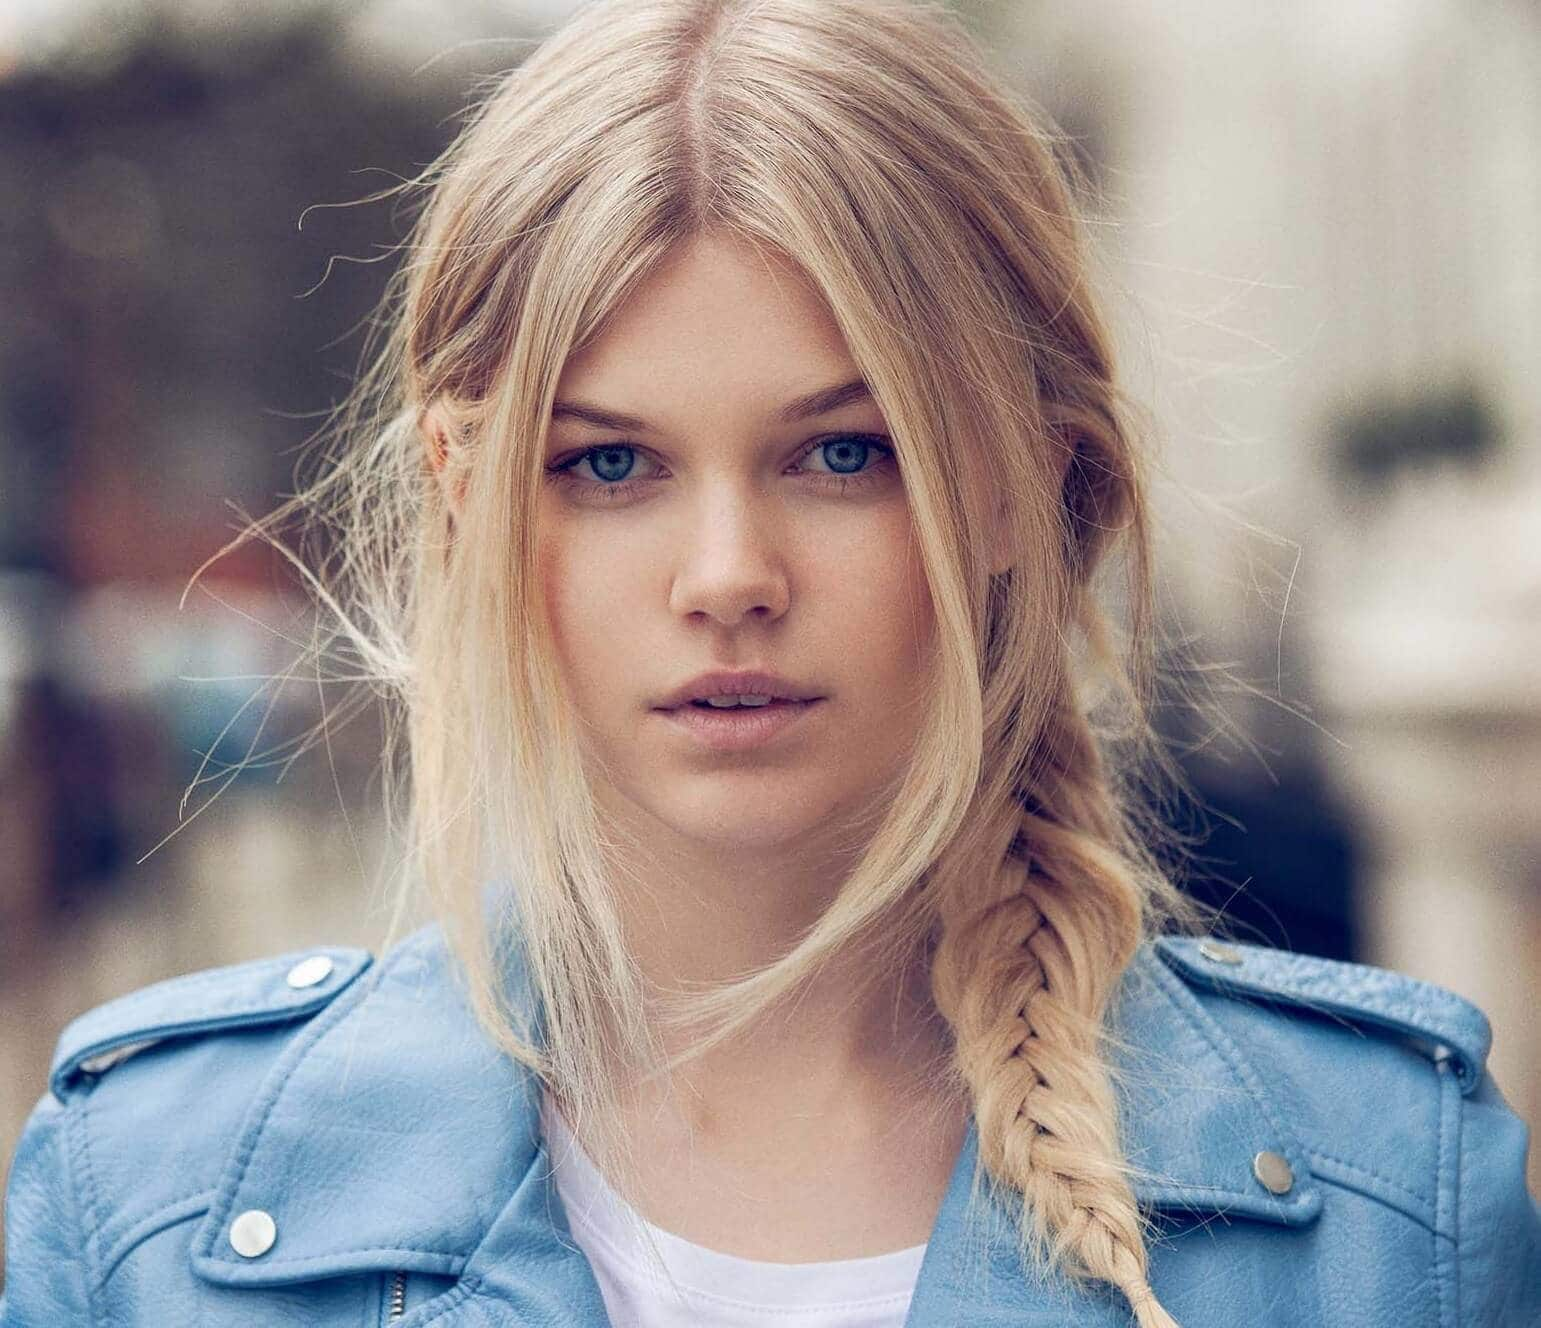 Party hairstyles: Woman with straight light blonde hair in side braid wearing a light blue leather jacket.